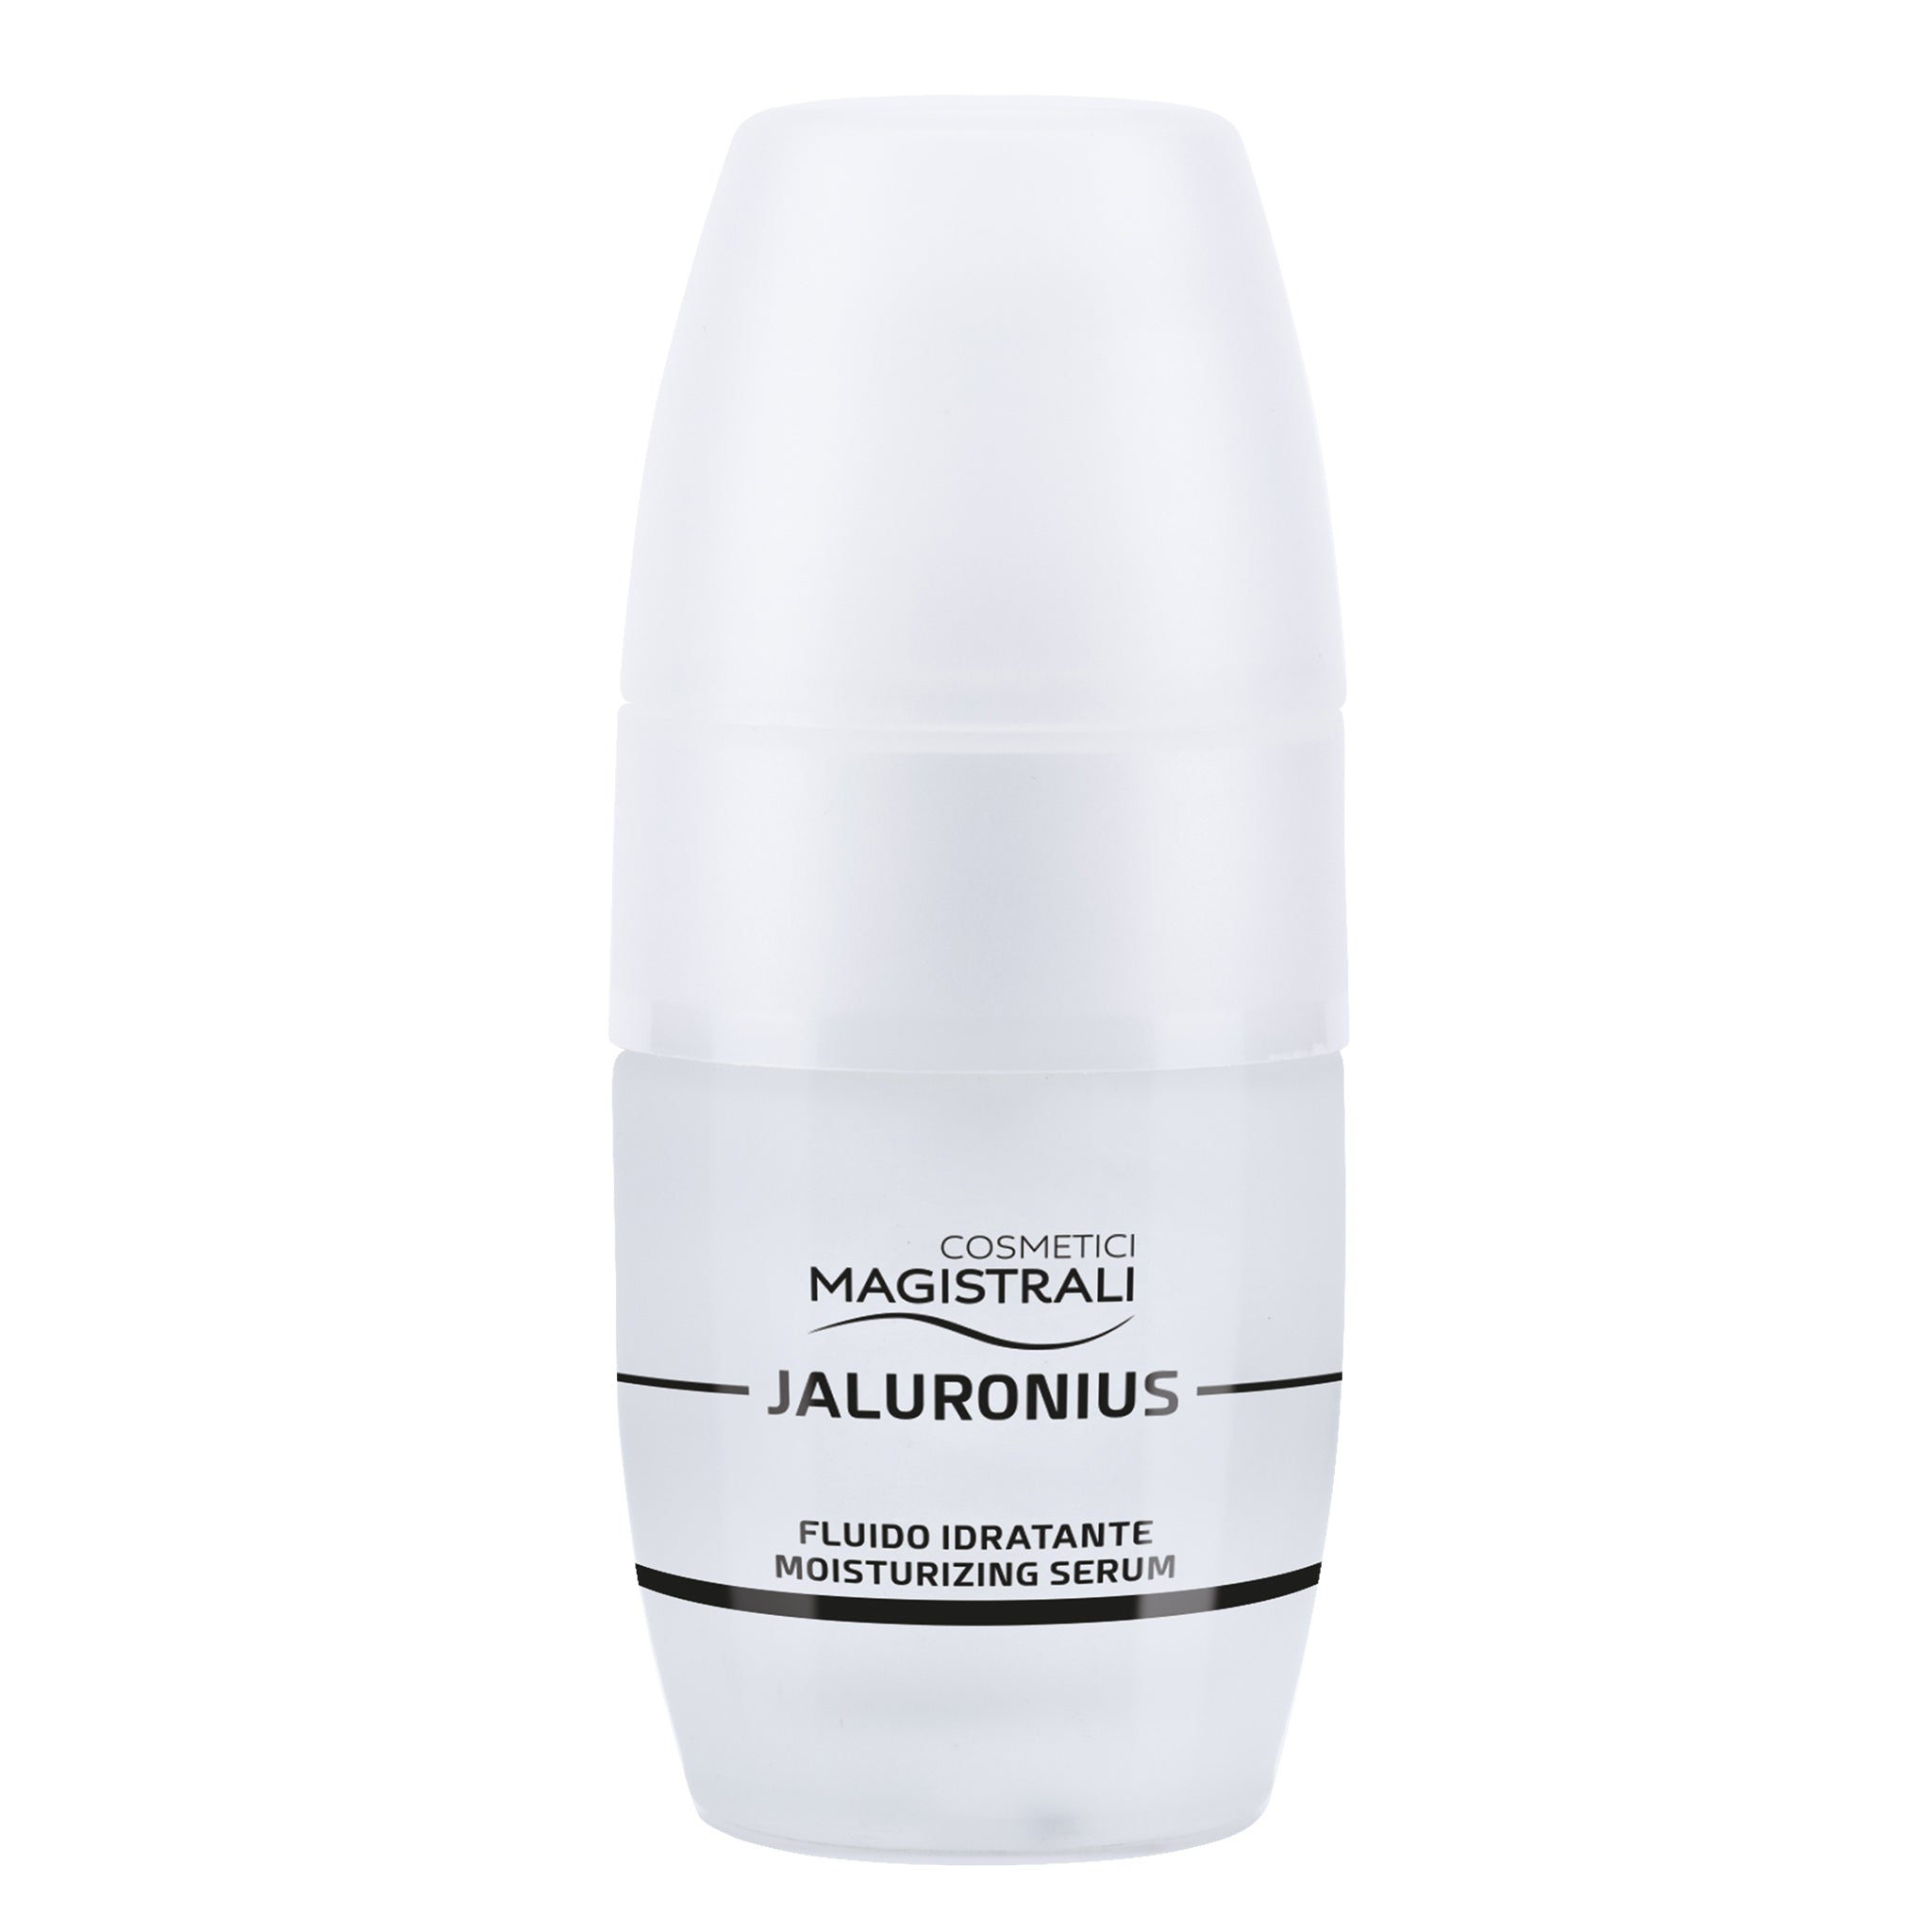 COSMETICI MAGISTRALI JALURONIUS 30ML